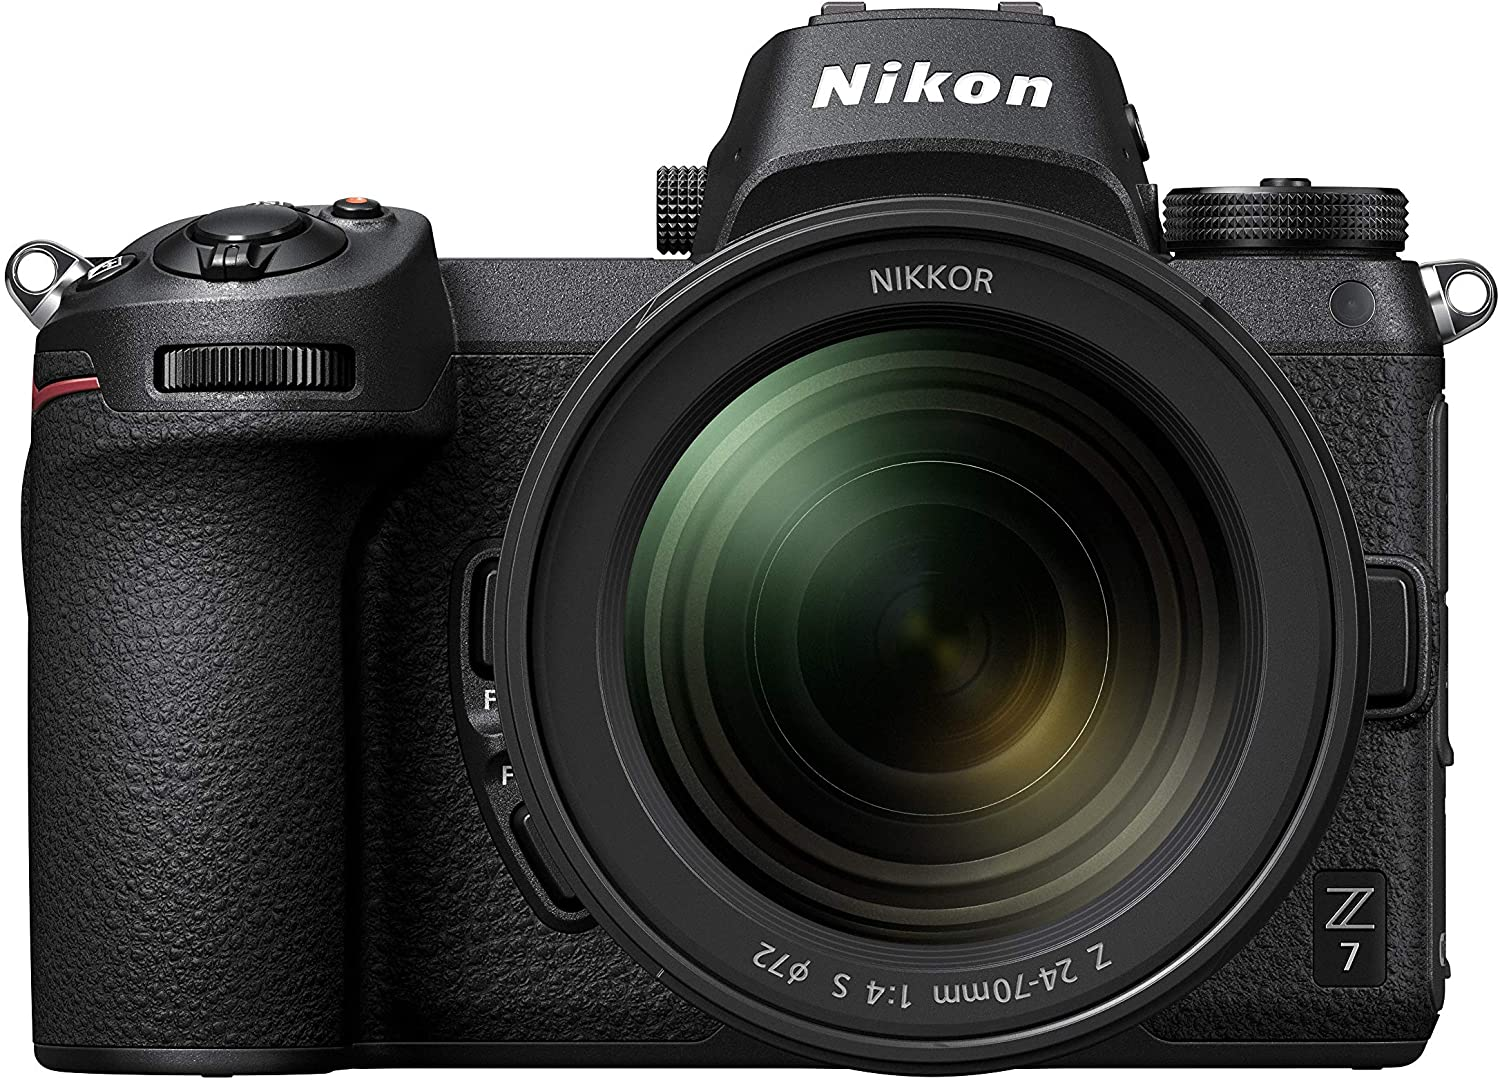 Nikon Z7 With 24-70mm f/4 S Lens and FTZ Mount Adapter